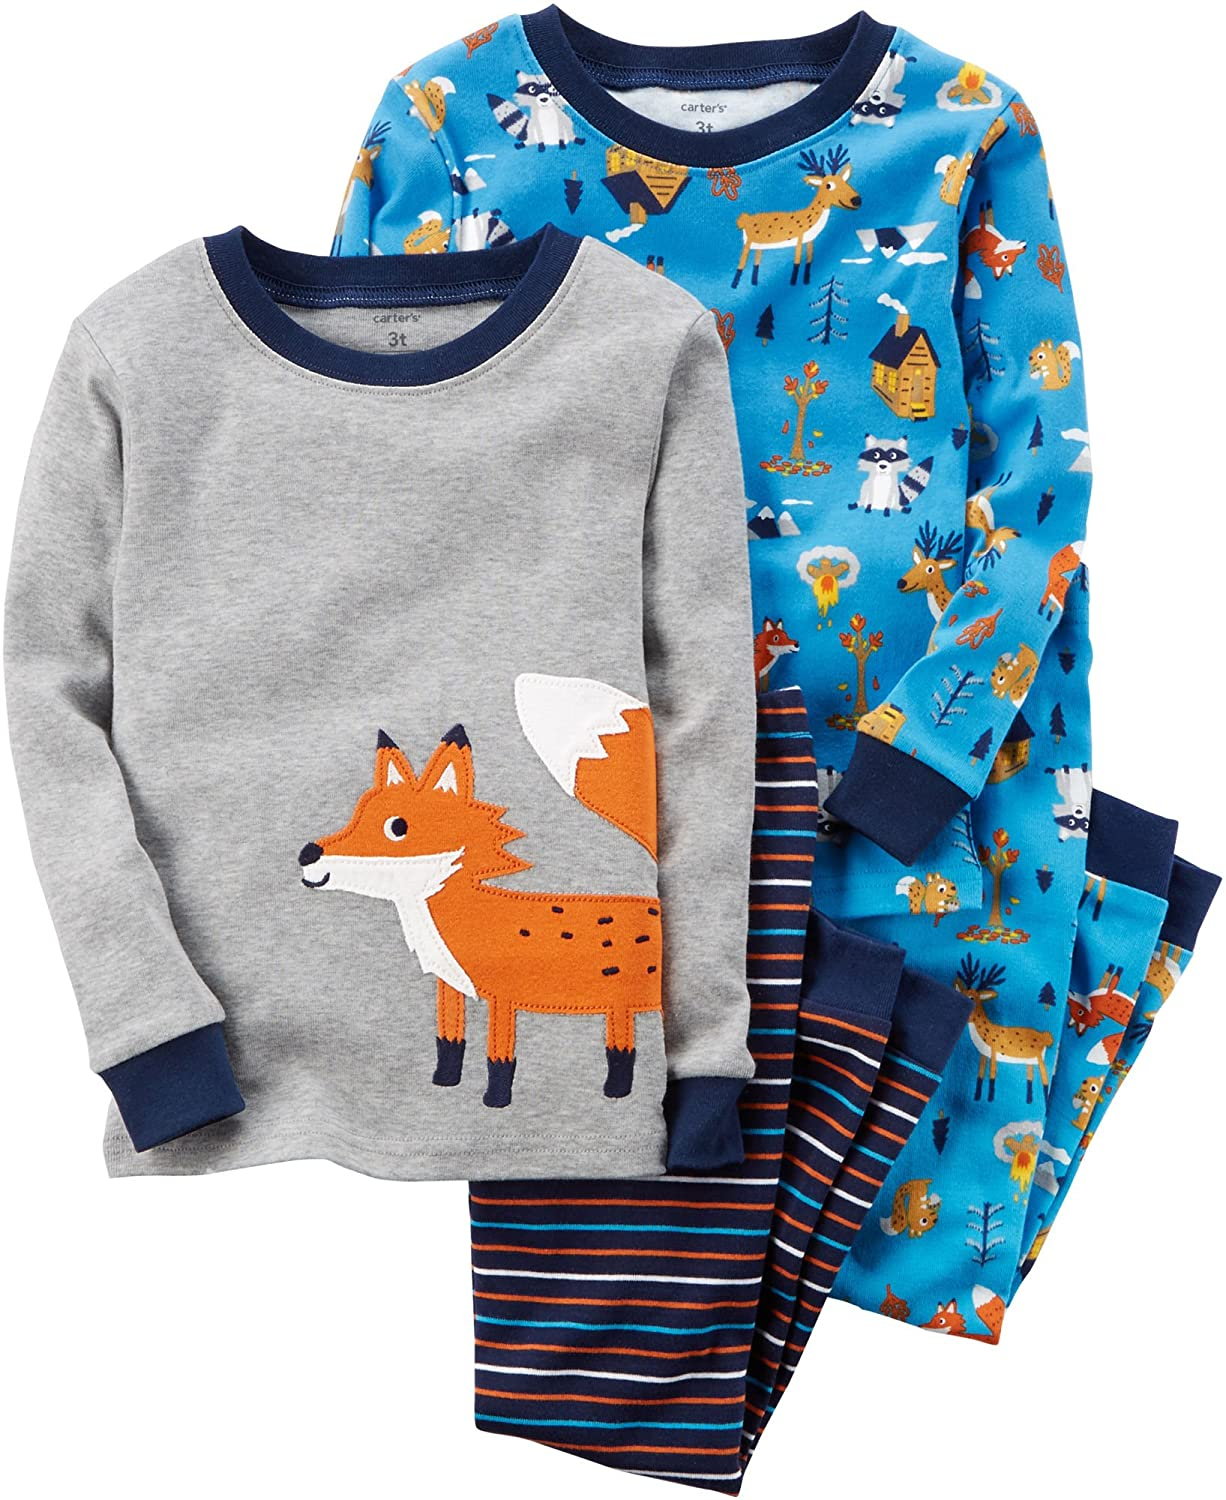 9b267011174a Amazon.com  Carter s Boys  12M-12 4 Piece Fox Pajamas Set Gray 4 ...